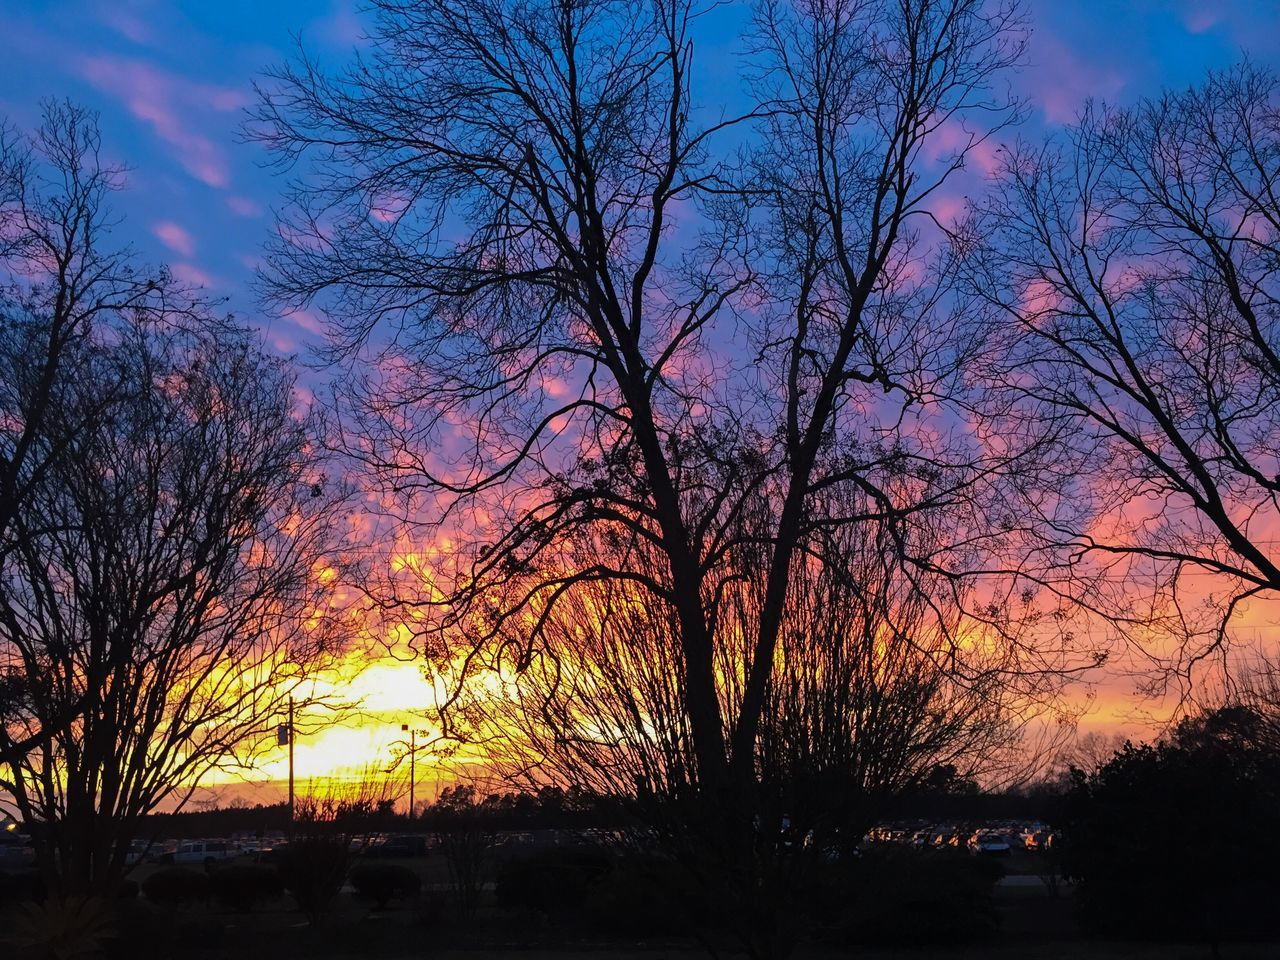 tree, bare tree, sunset, nature, beauty in nature, silhouette, tranquility, tranquil scene, sky, scenics, outdoors, no people, branch, landscape, growth, day